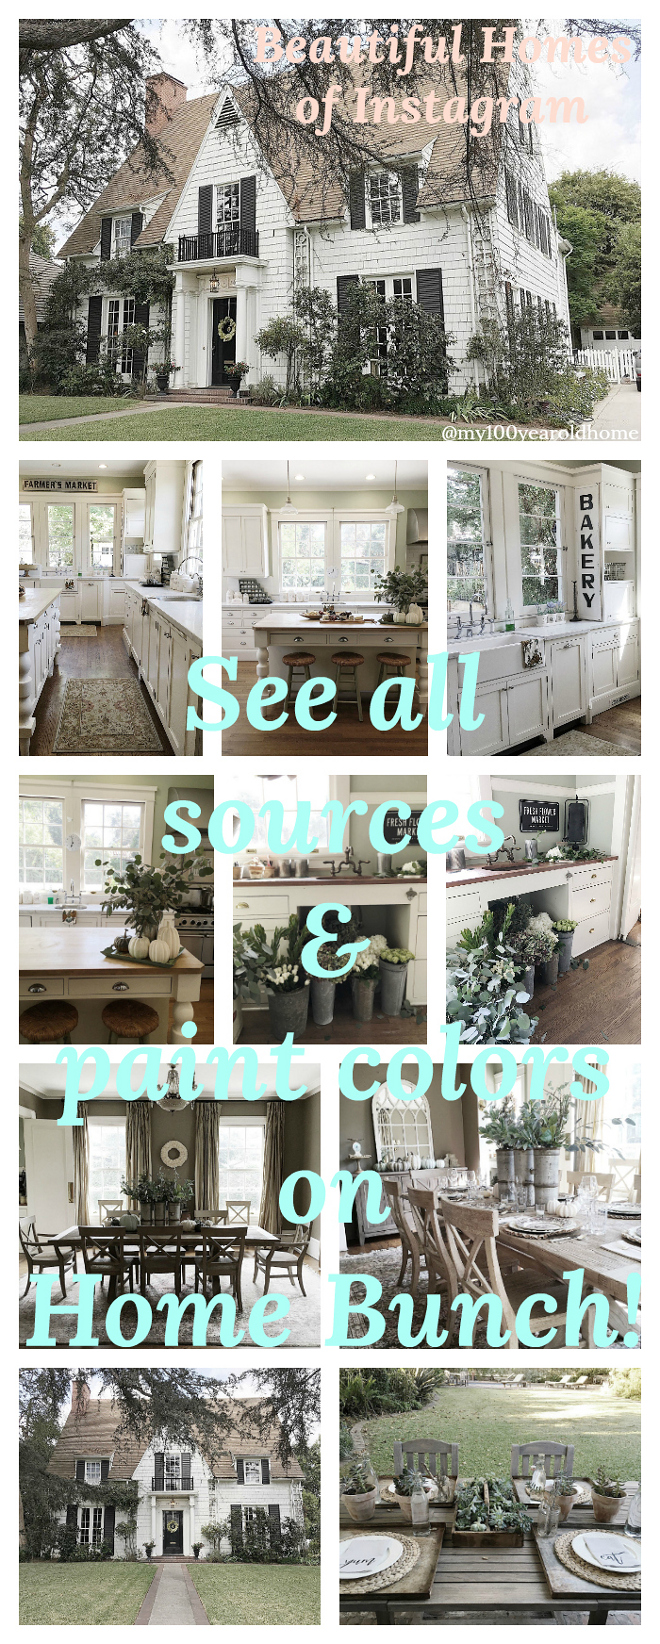 Beautiful Homes of Instagram. A real blog series showcasing real homes. See all sources and paint colors on Home Bunch.